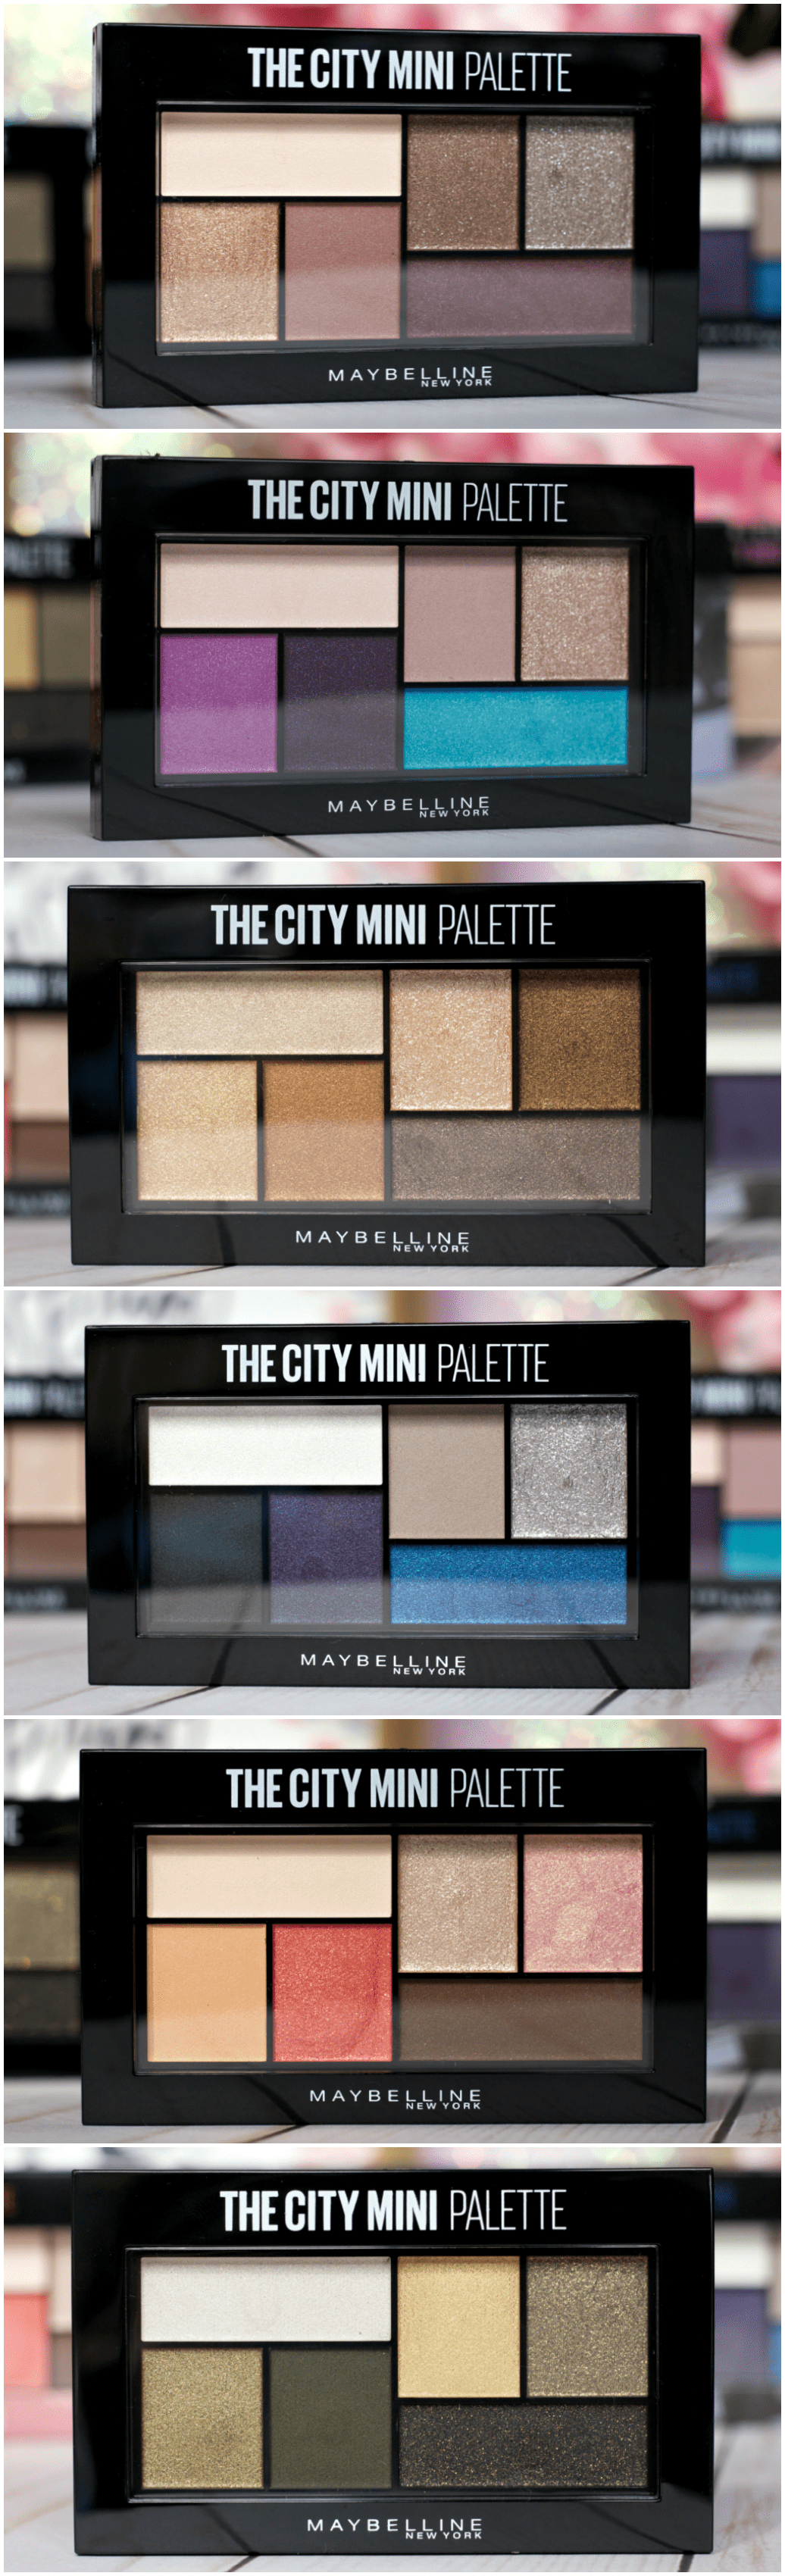 New Maybelline The City Mini Palettes